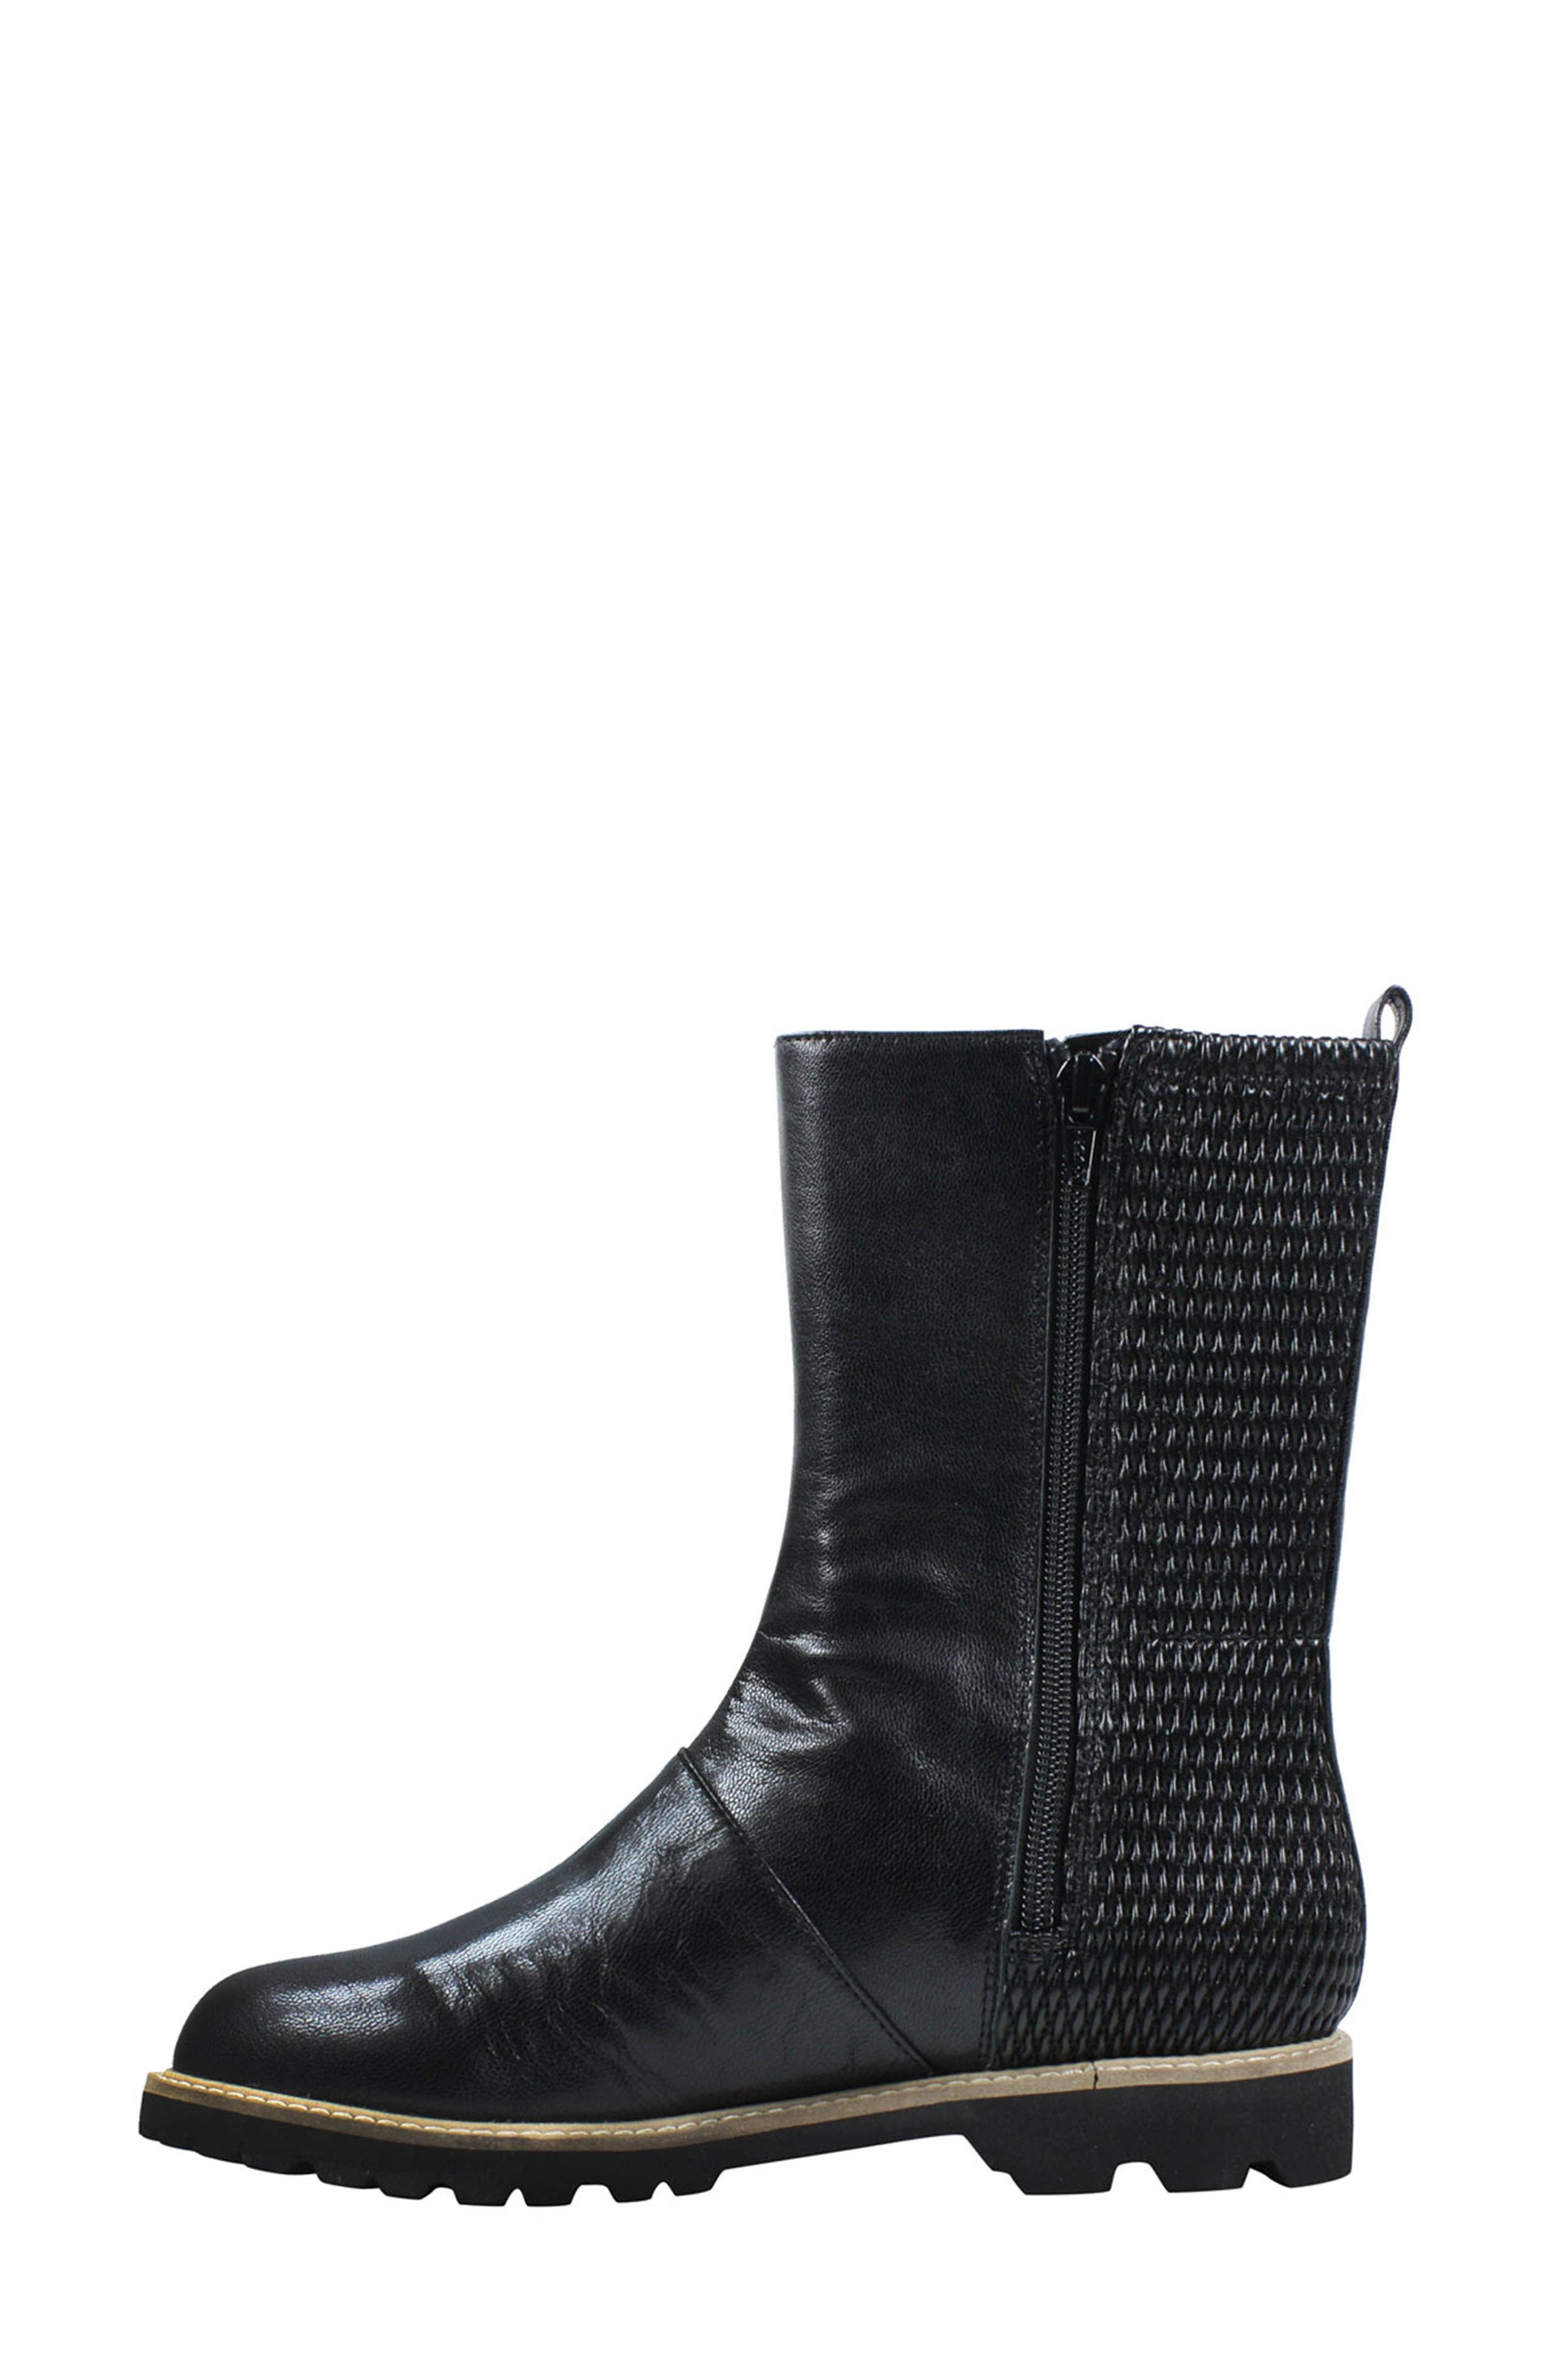 Reyney Boot,                             Alternate thumbnail 2, color,                             Black Leather